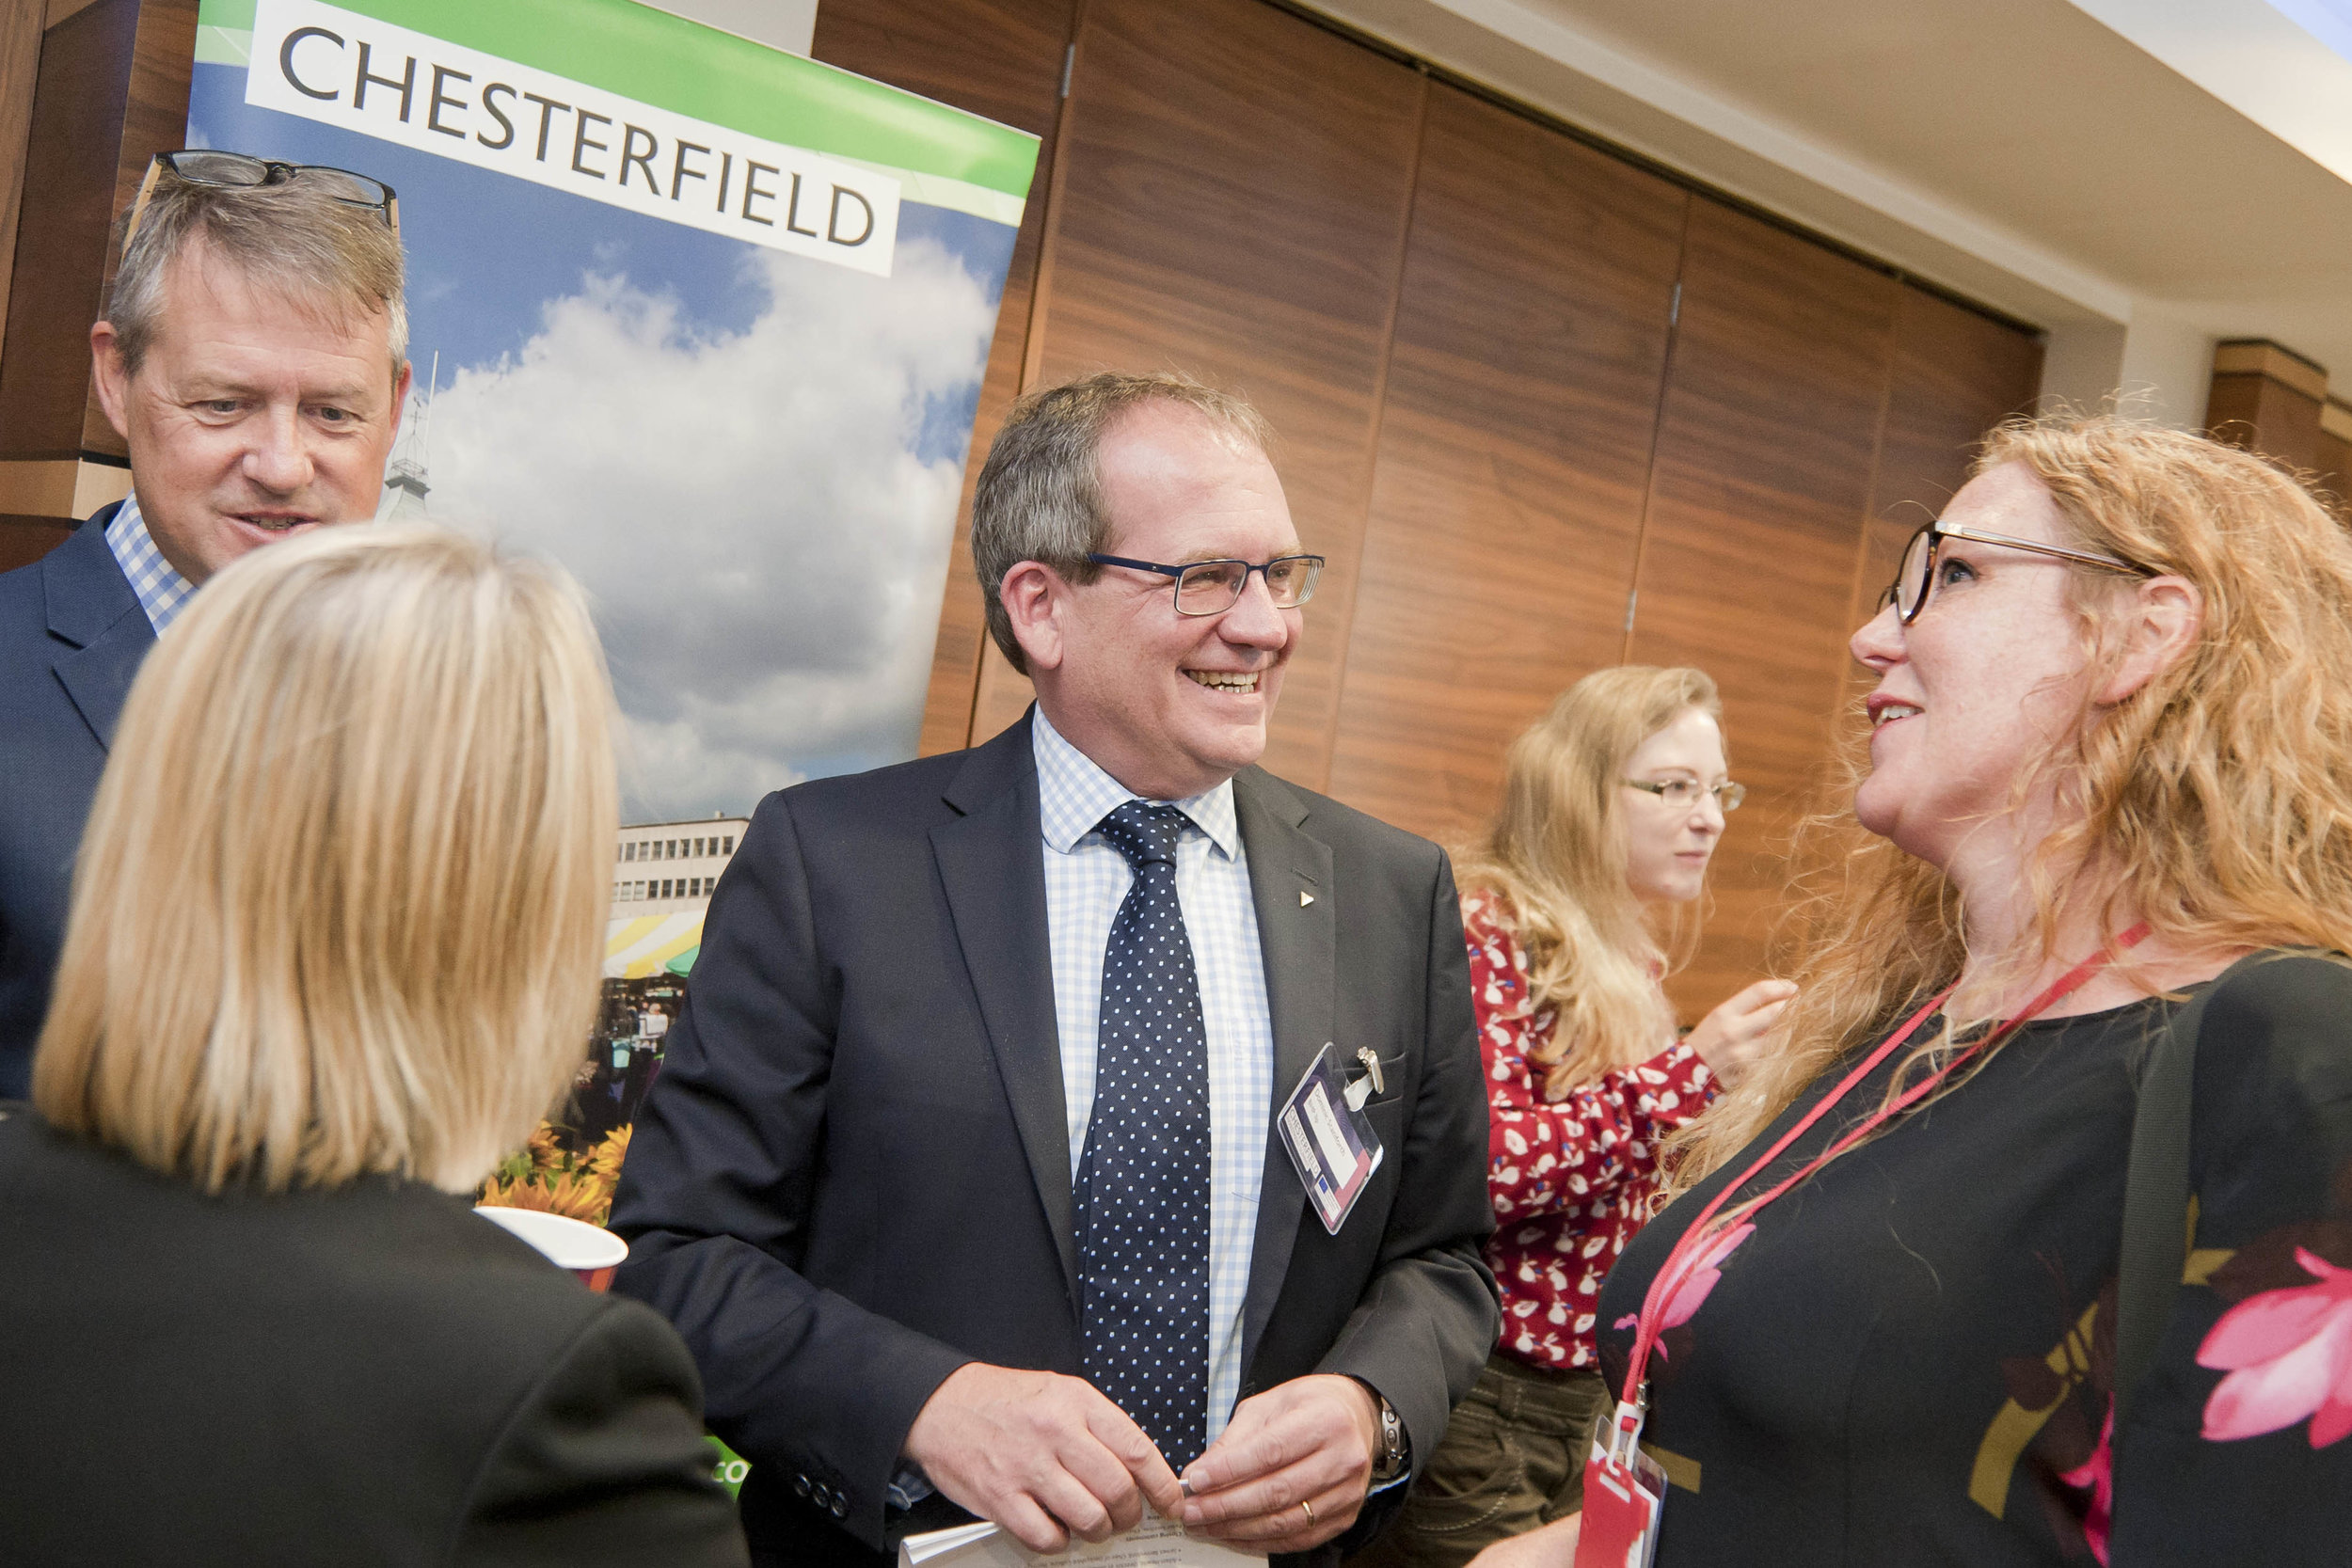 Chesterfield Investment Summit 2018 held at the Casa Hotel, Chesterfield, organised by Destination Chesterfield.